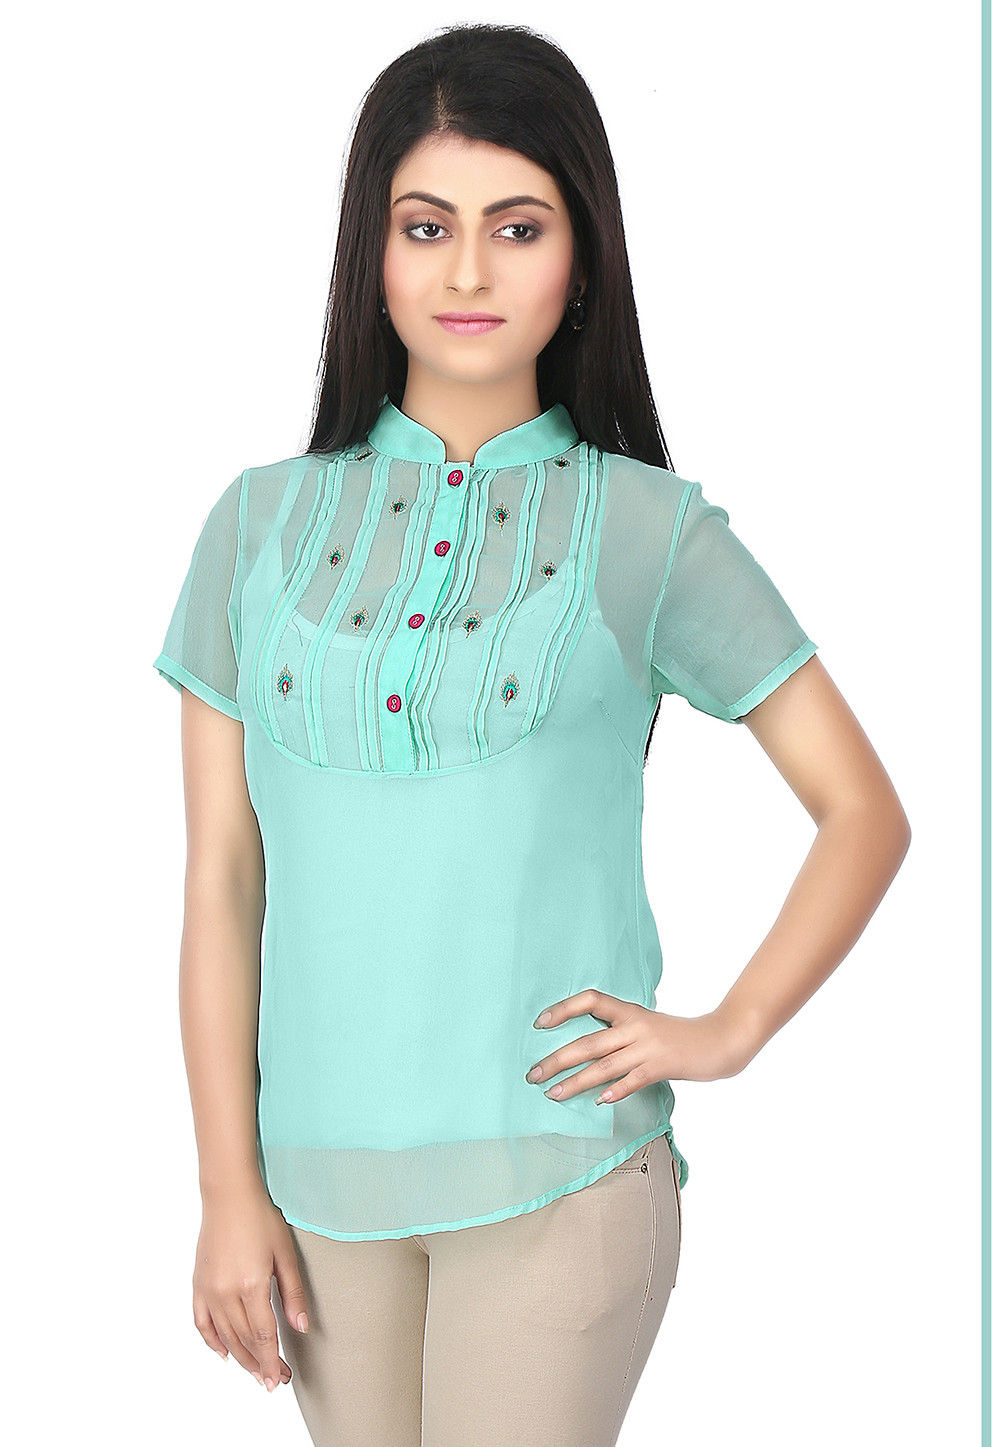 Tucks Georgette Top in Turquoise